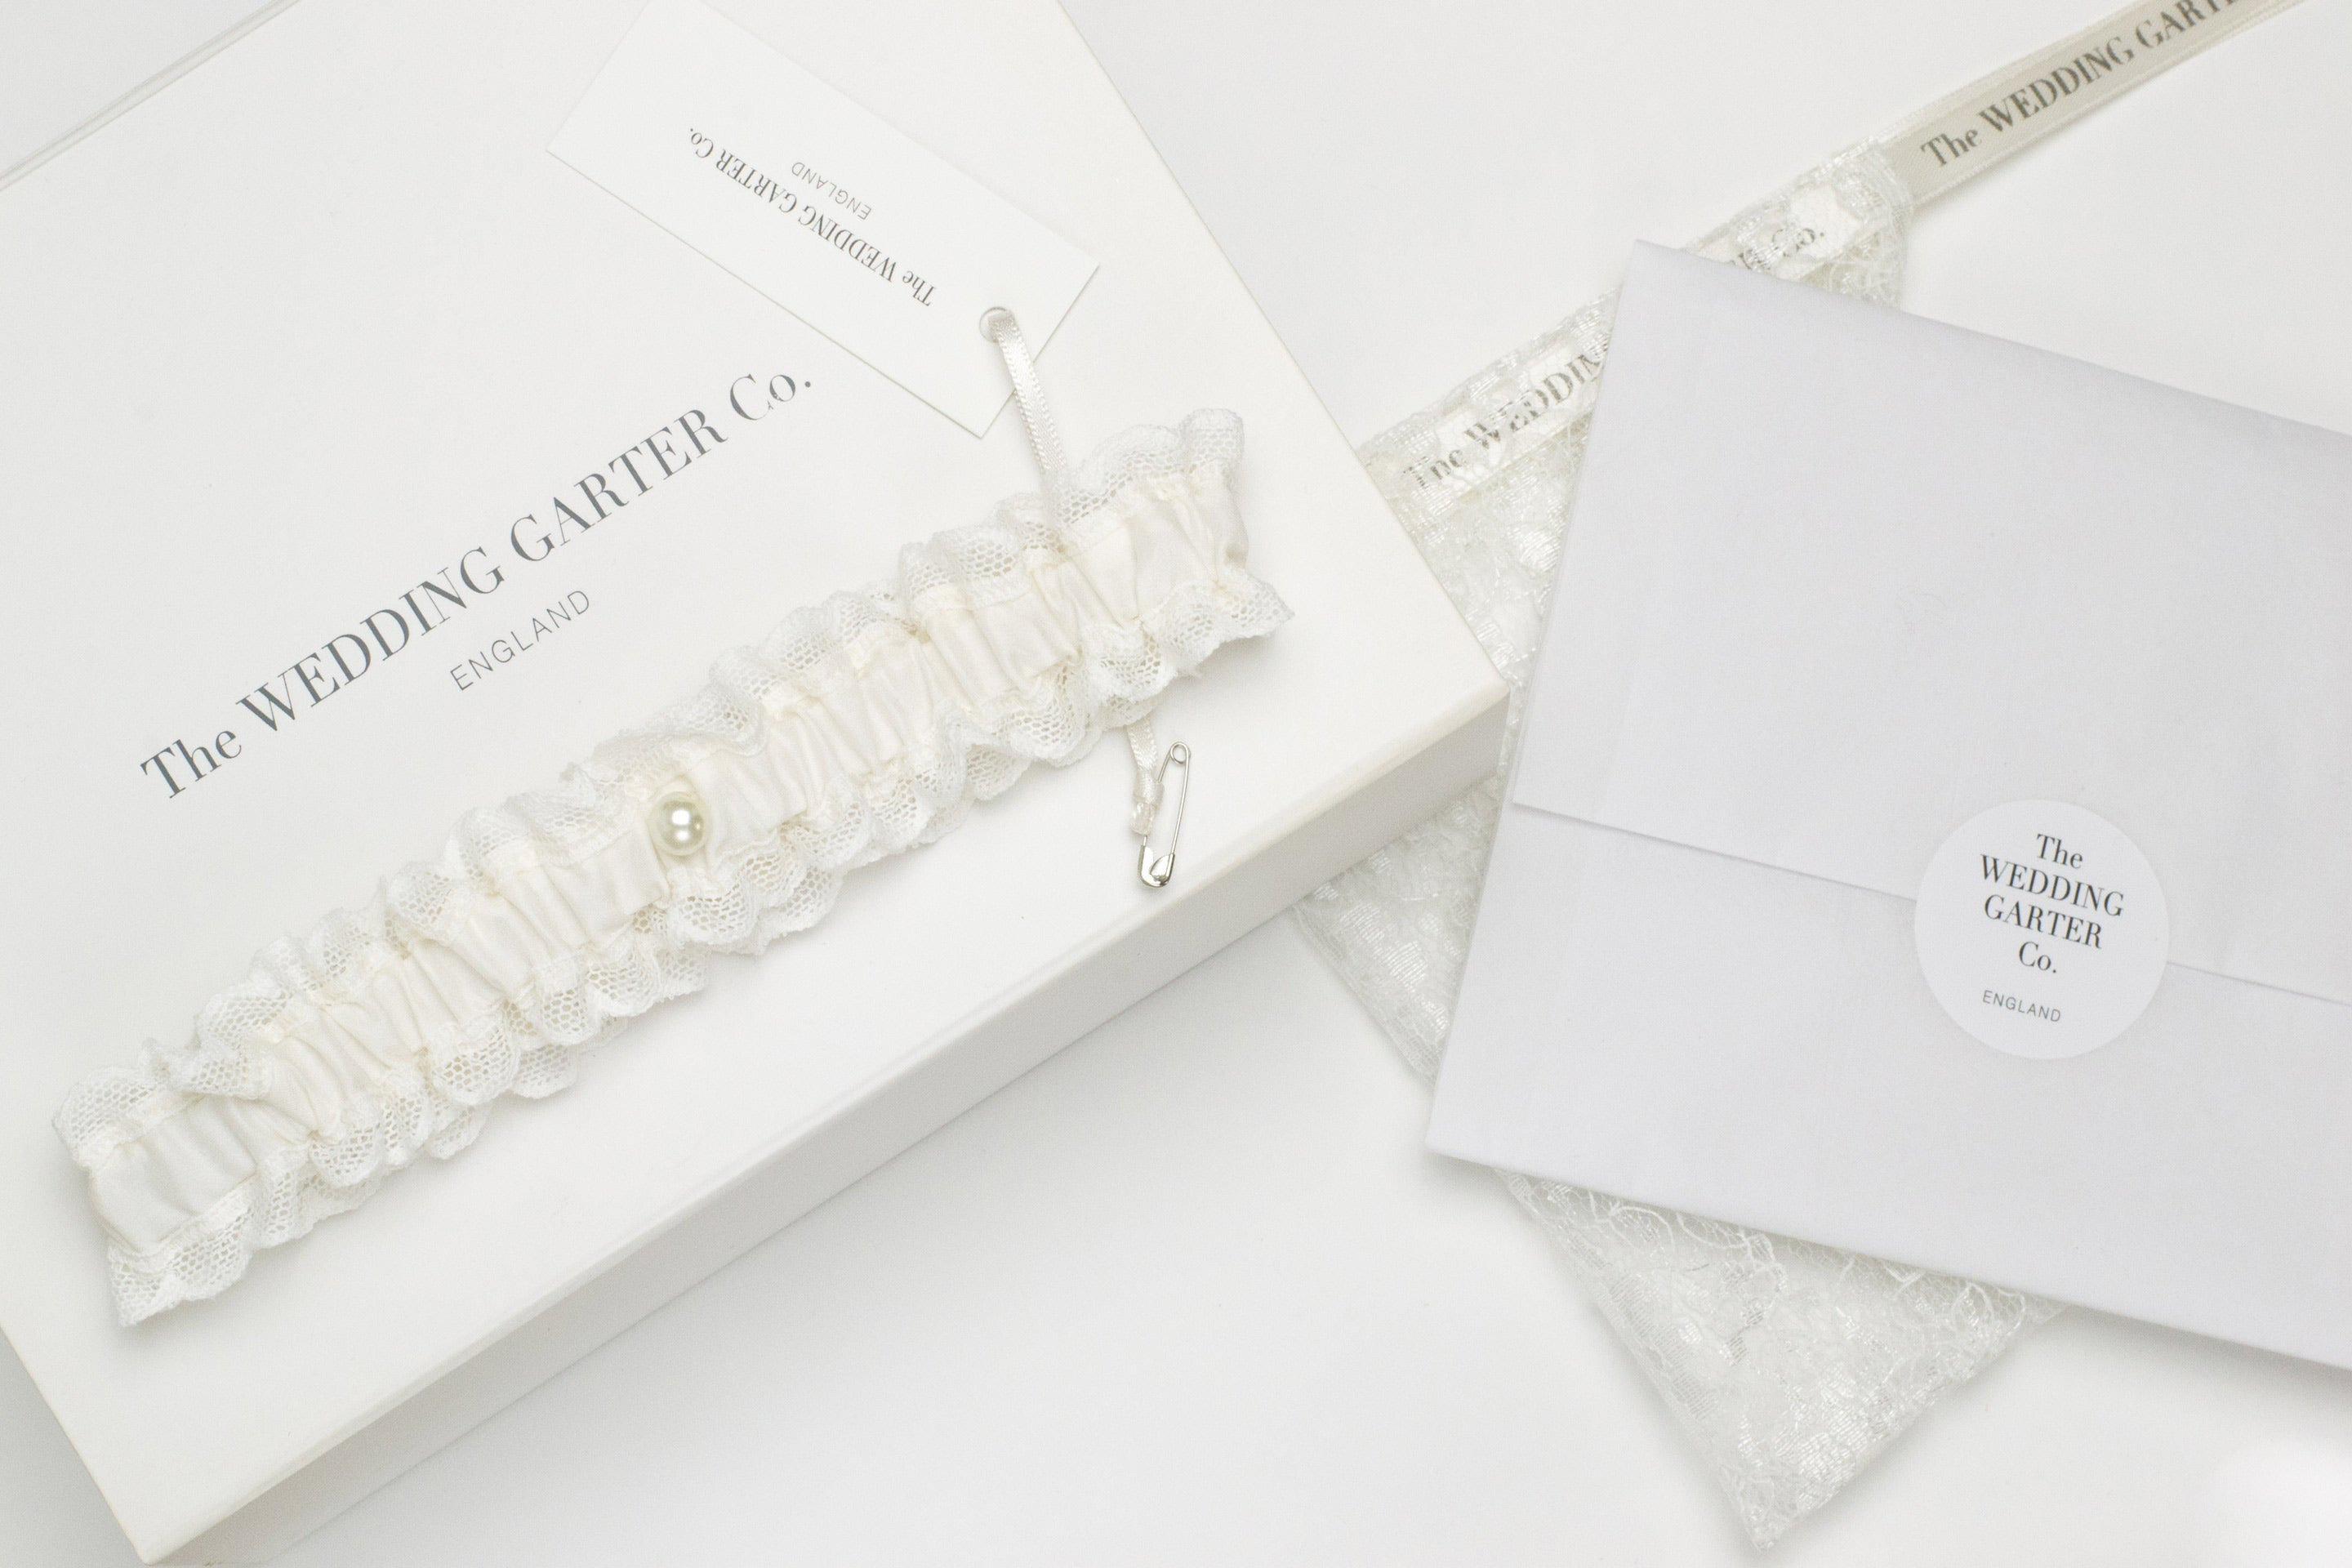 news tagged bridal garters the wedding garter co garter the florence garter is one of the most comfortable garters to wear all day the silk that completely envelopes the band keeping your garter